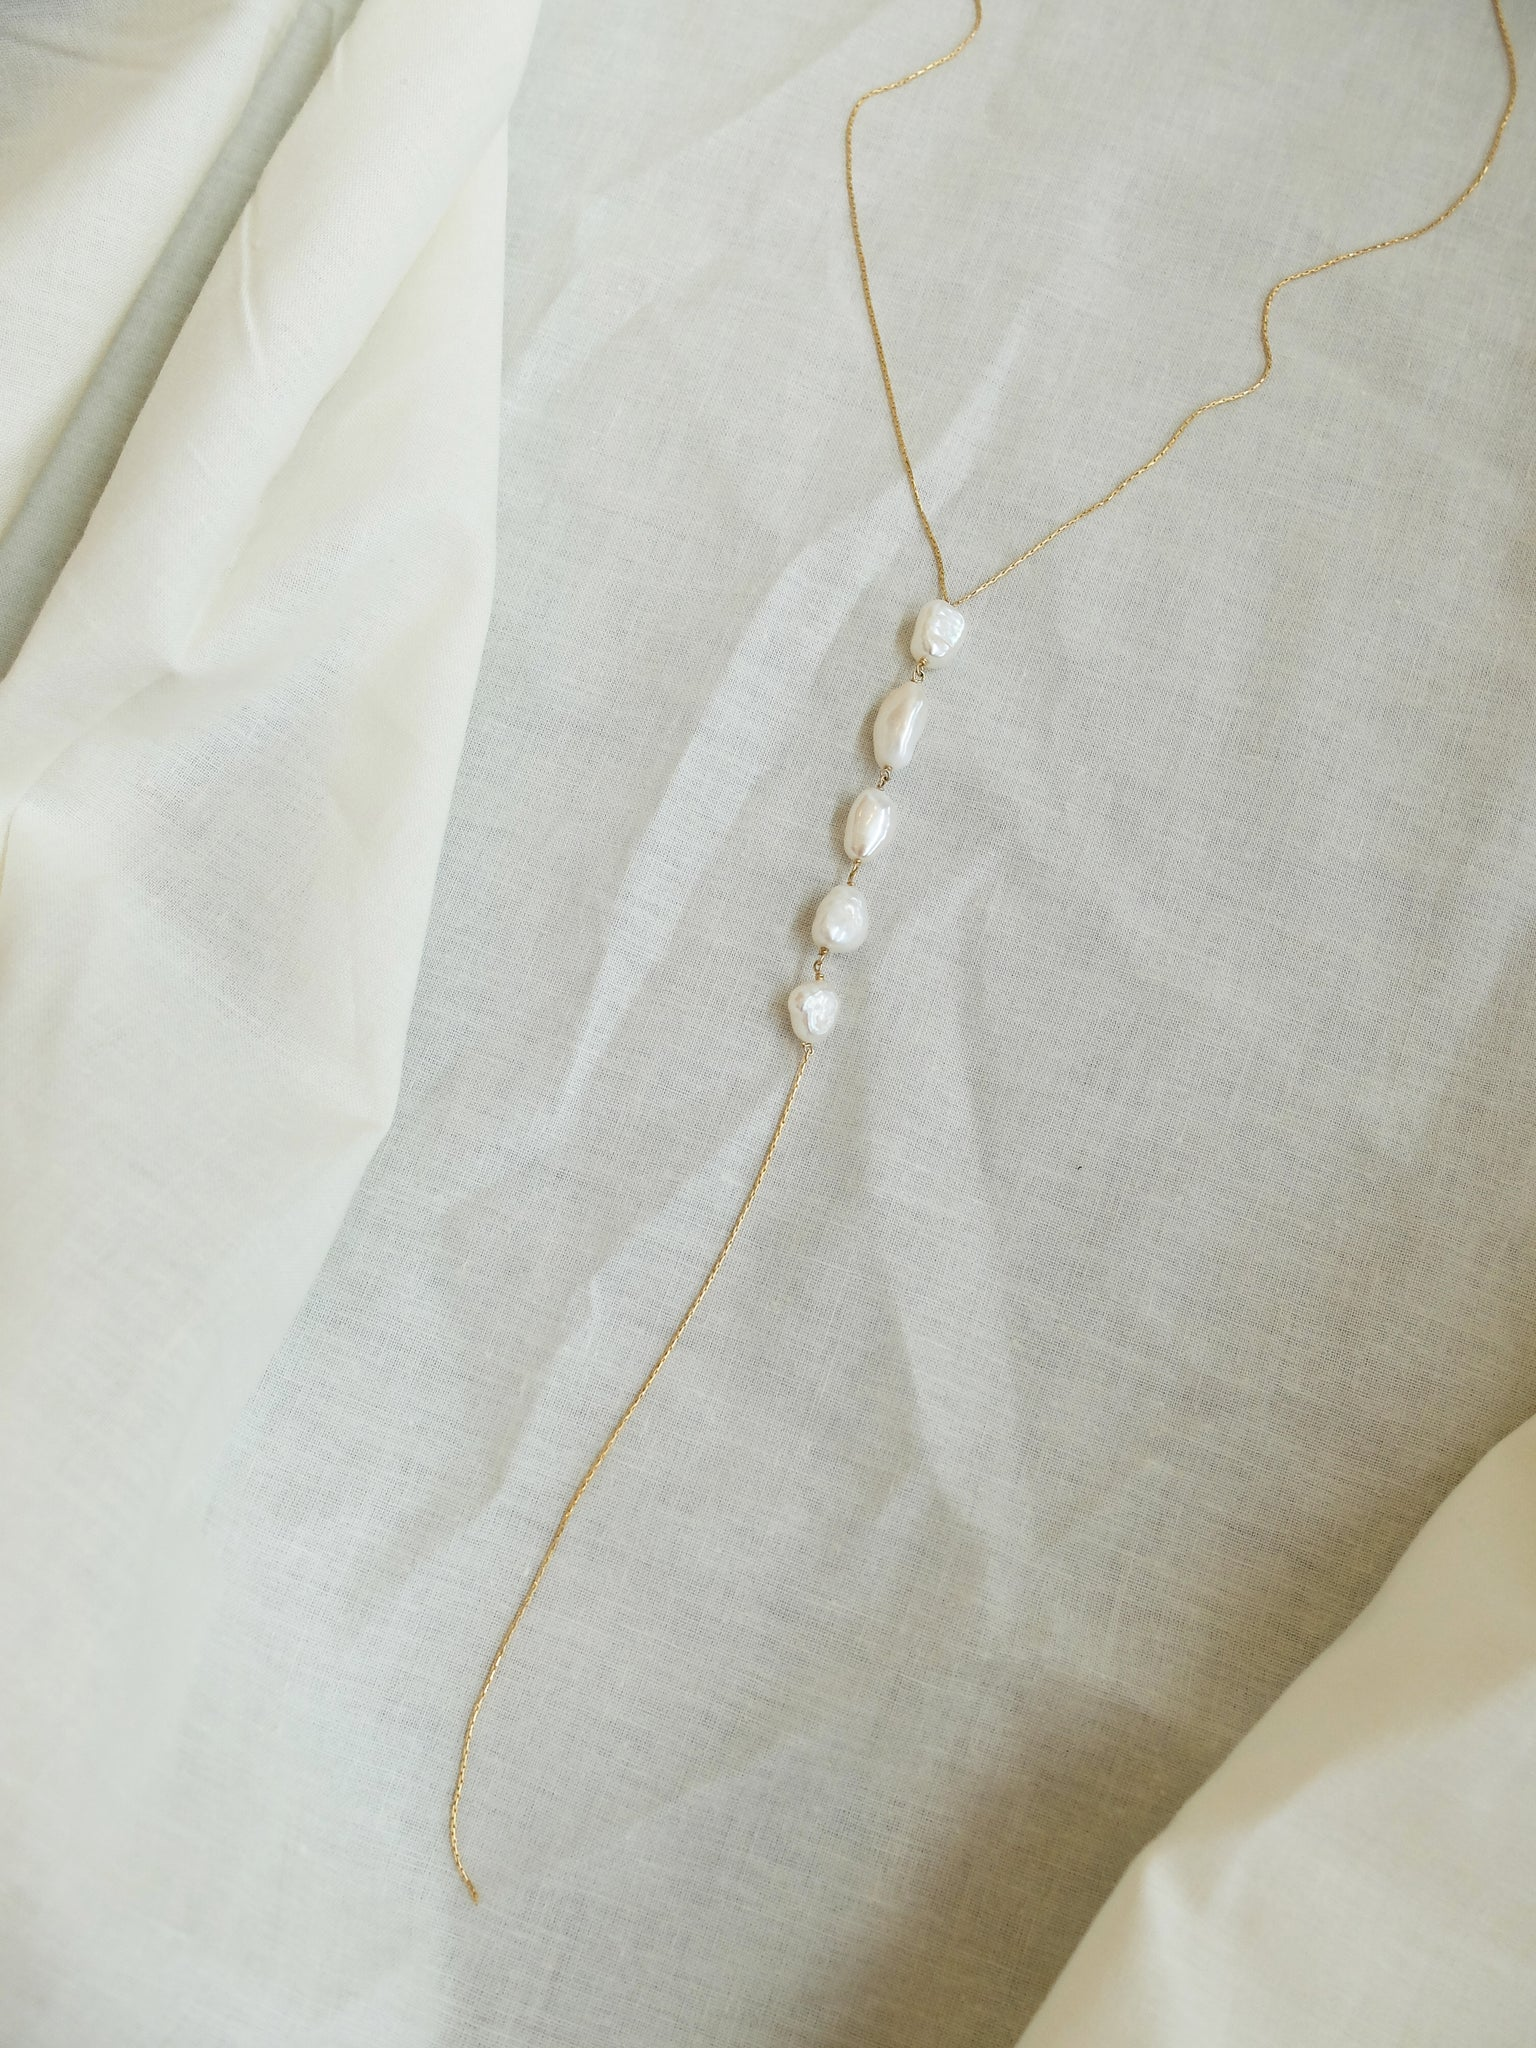 Cinq Necklace